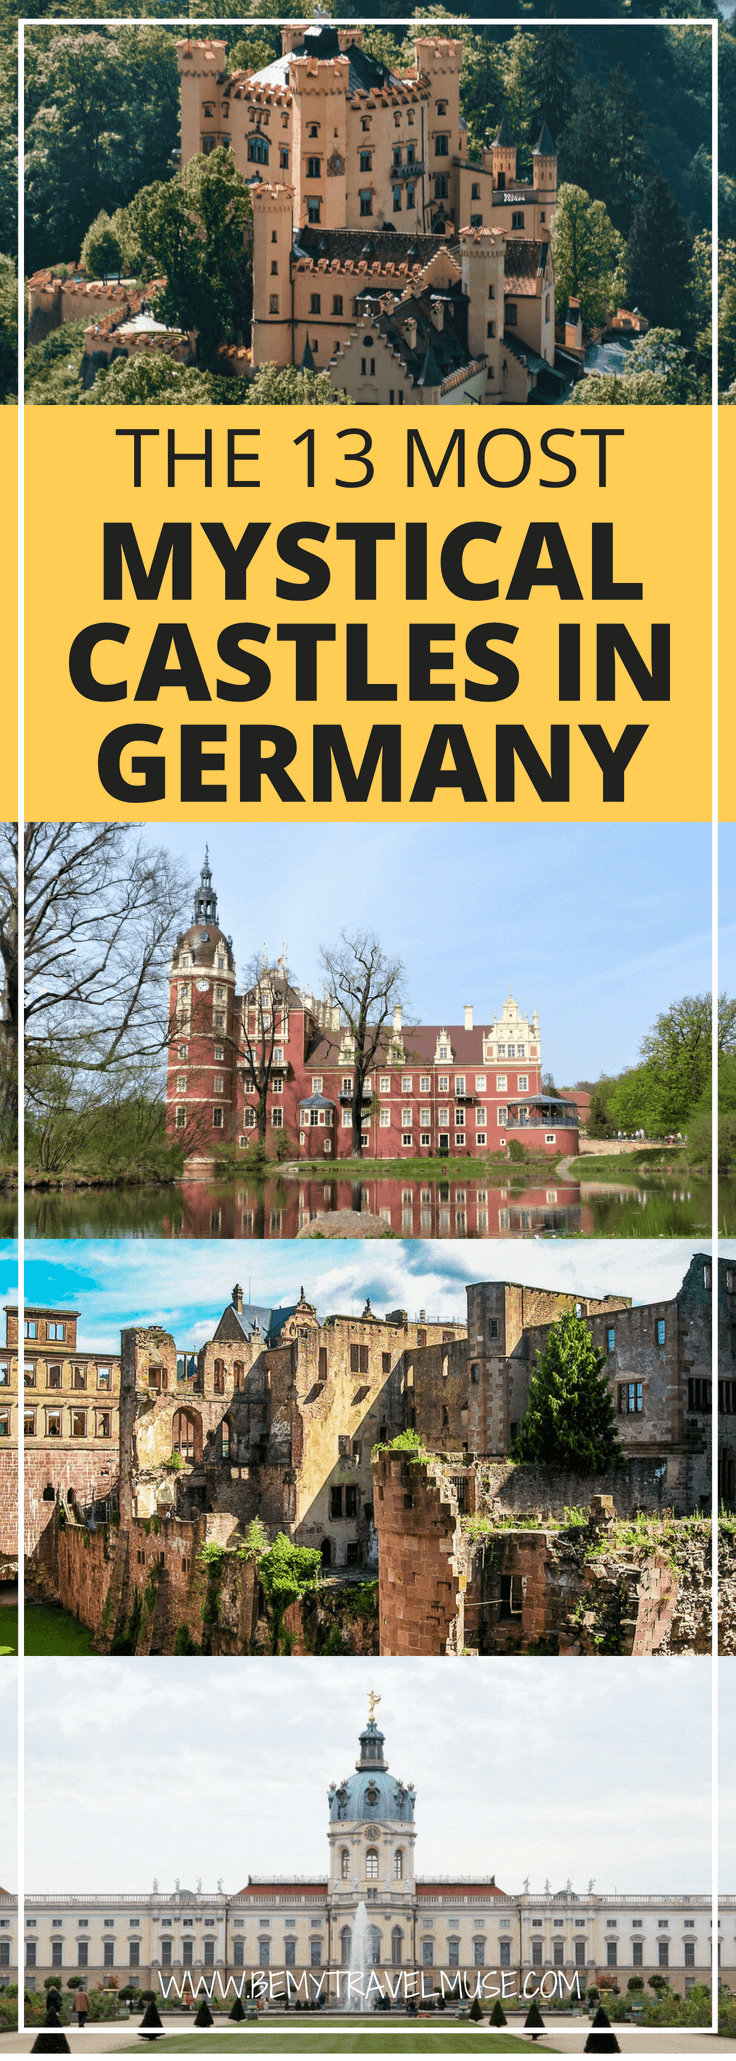 If you like mystical castles, you need to visit Germany! I rounded up 13 of the most beautiful castles in Germany that will help you plan your dream trip. From the popular Hohenzollern to some lesser known ones, pictures and what makes each of them so special included. #Germany #Castles